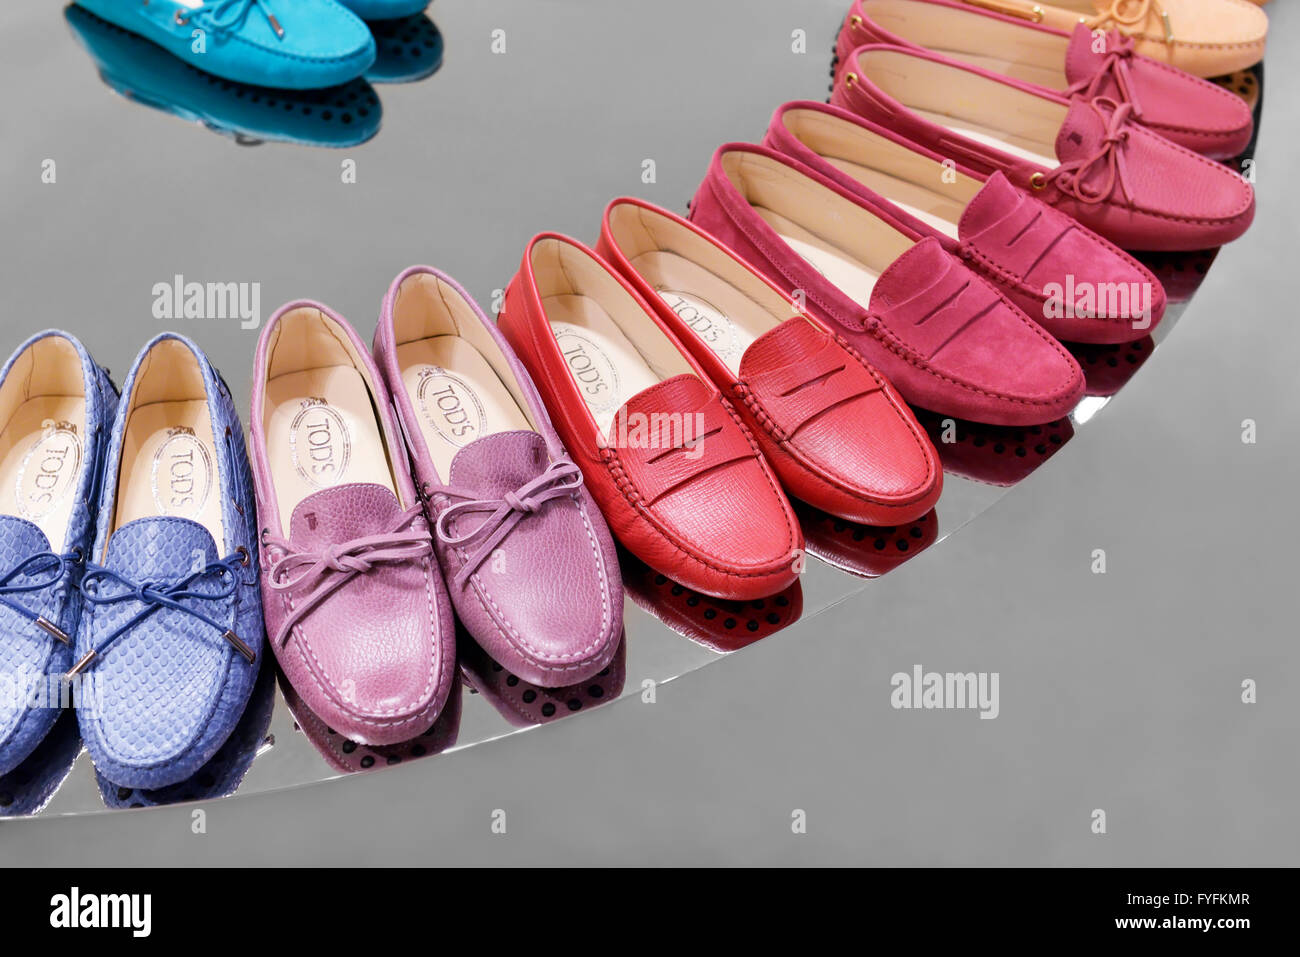 Tods Stock Photos Tods Stock Images Alamy